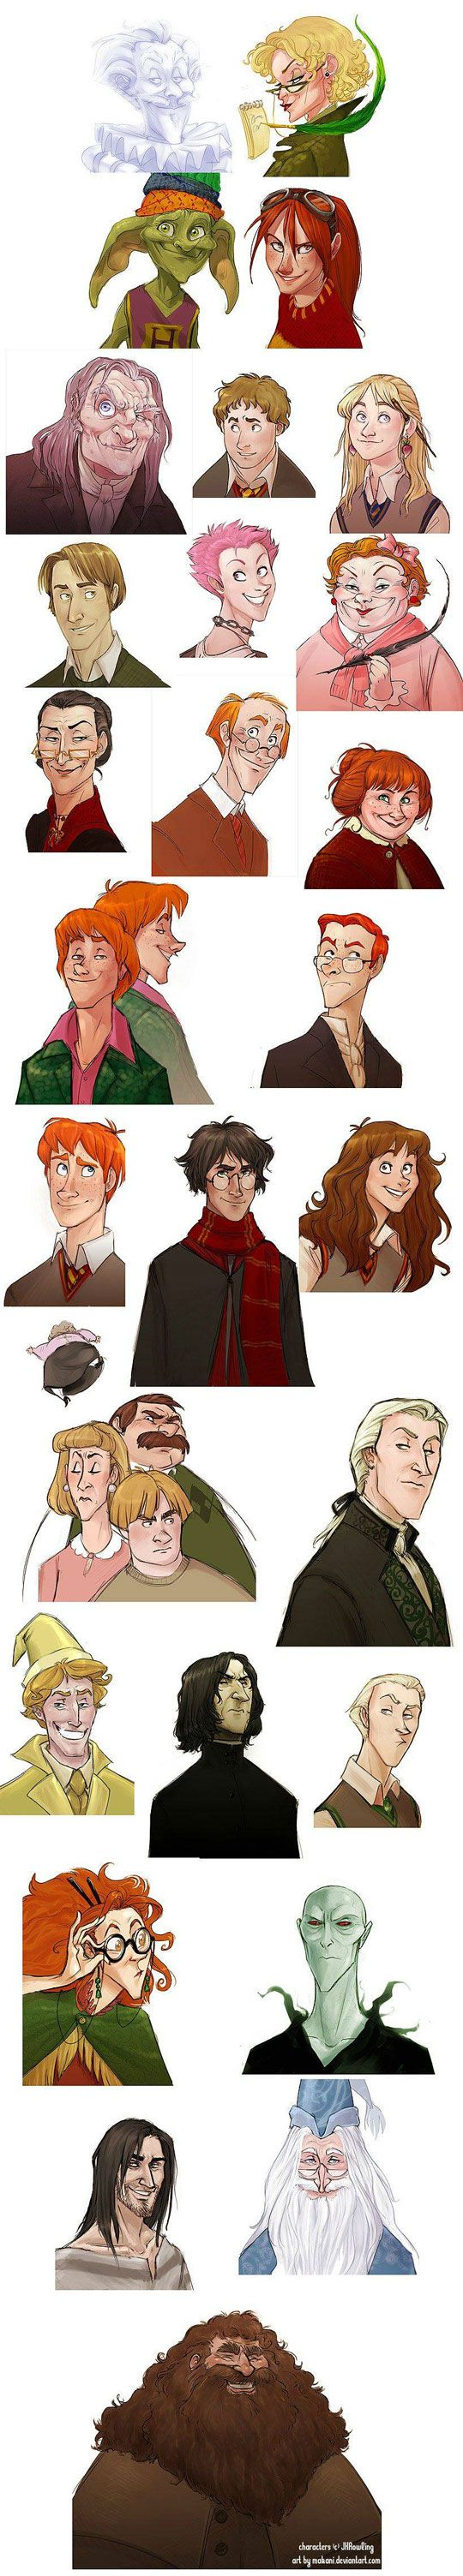 If Disney made Harry Potter movies!!!